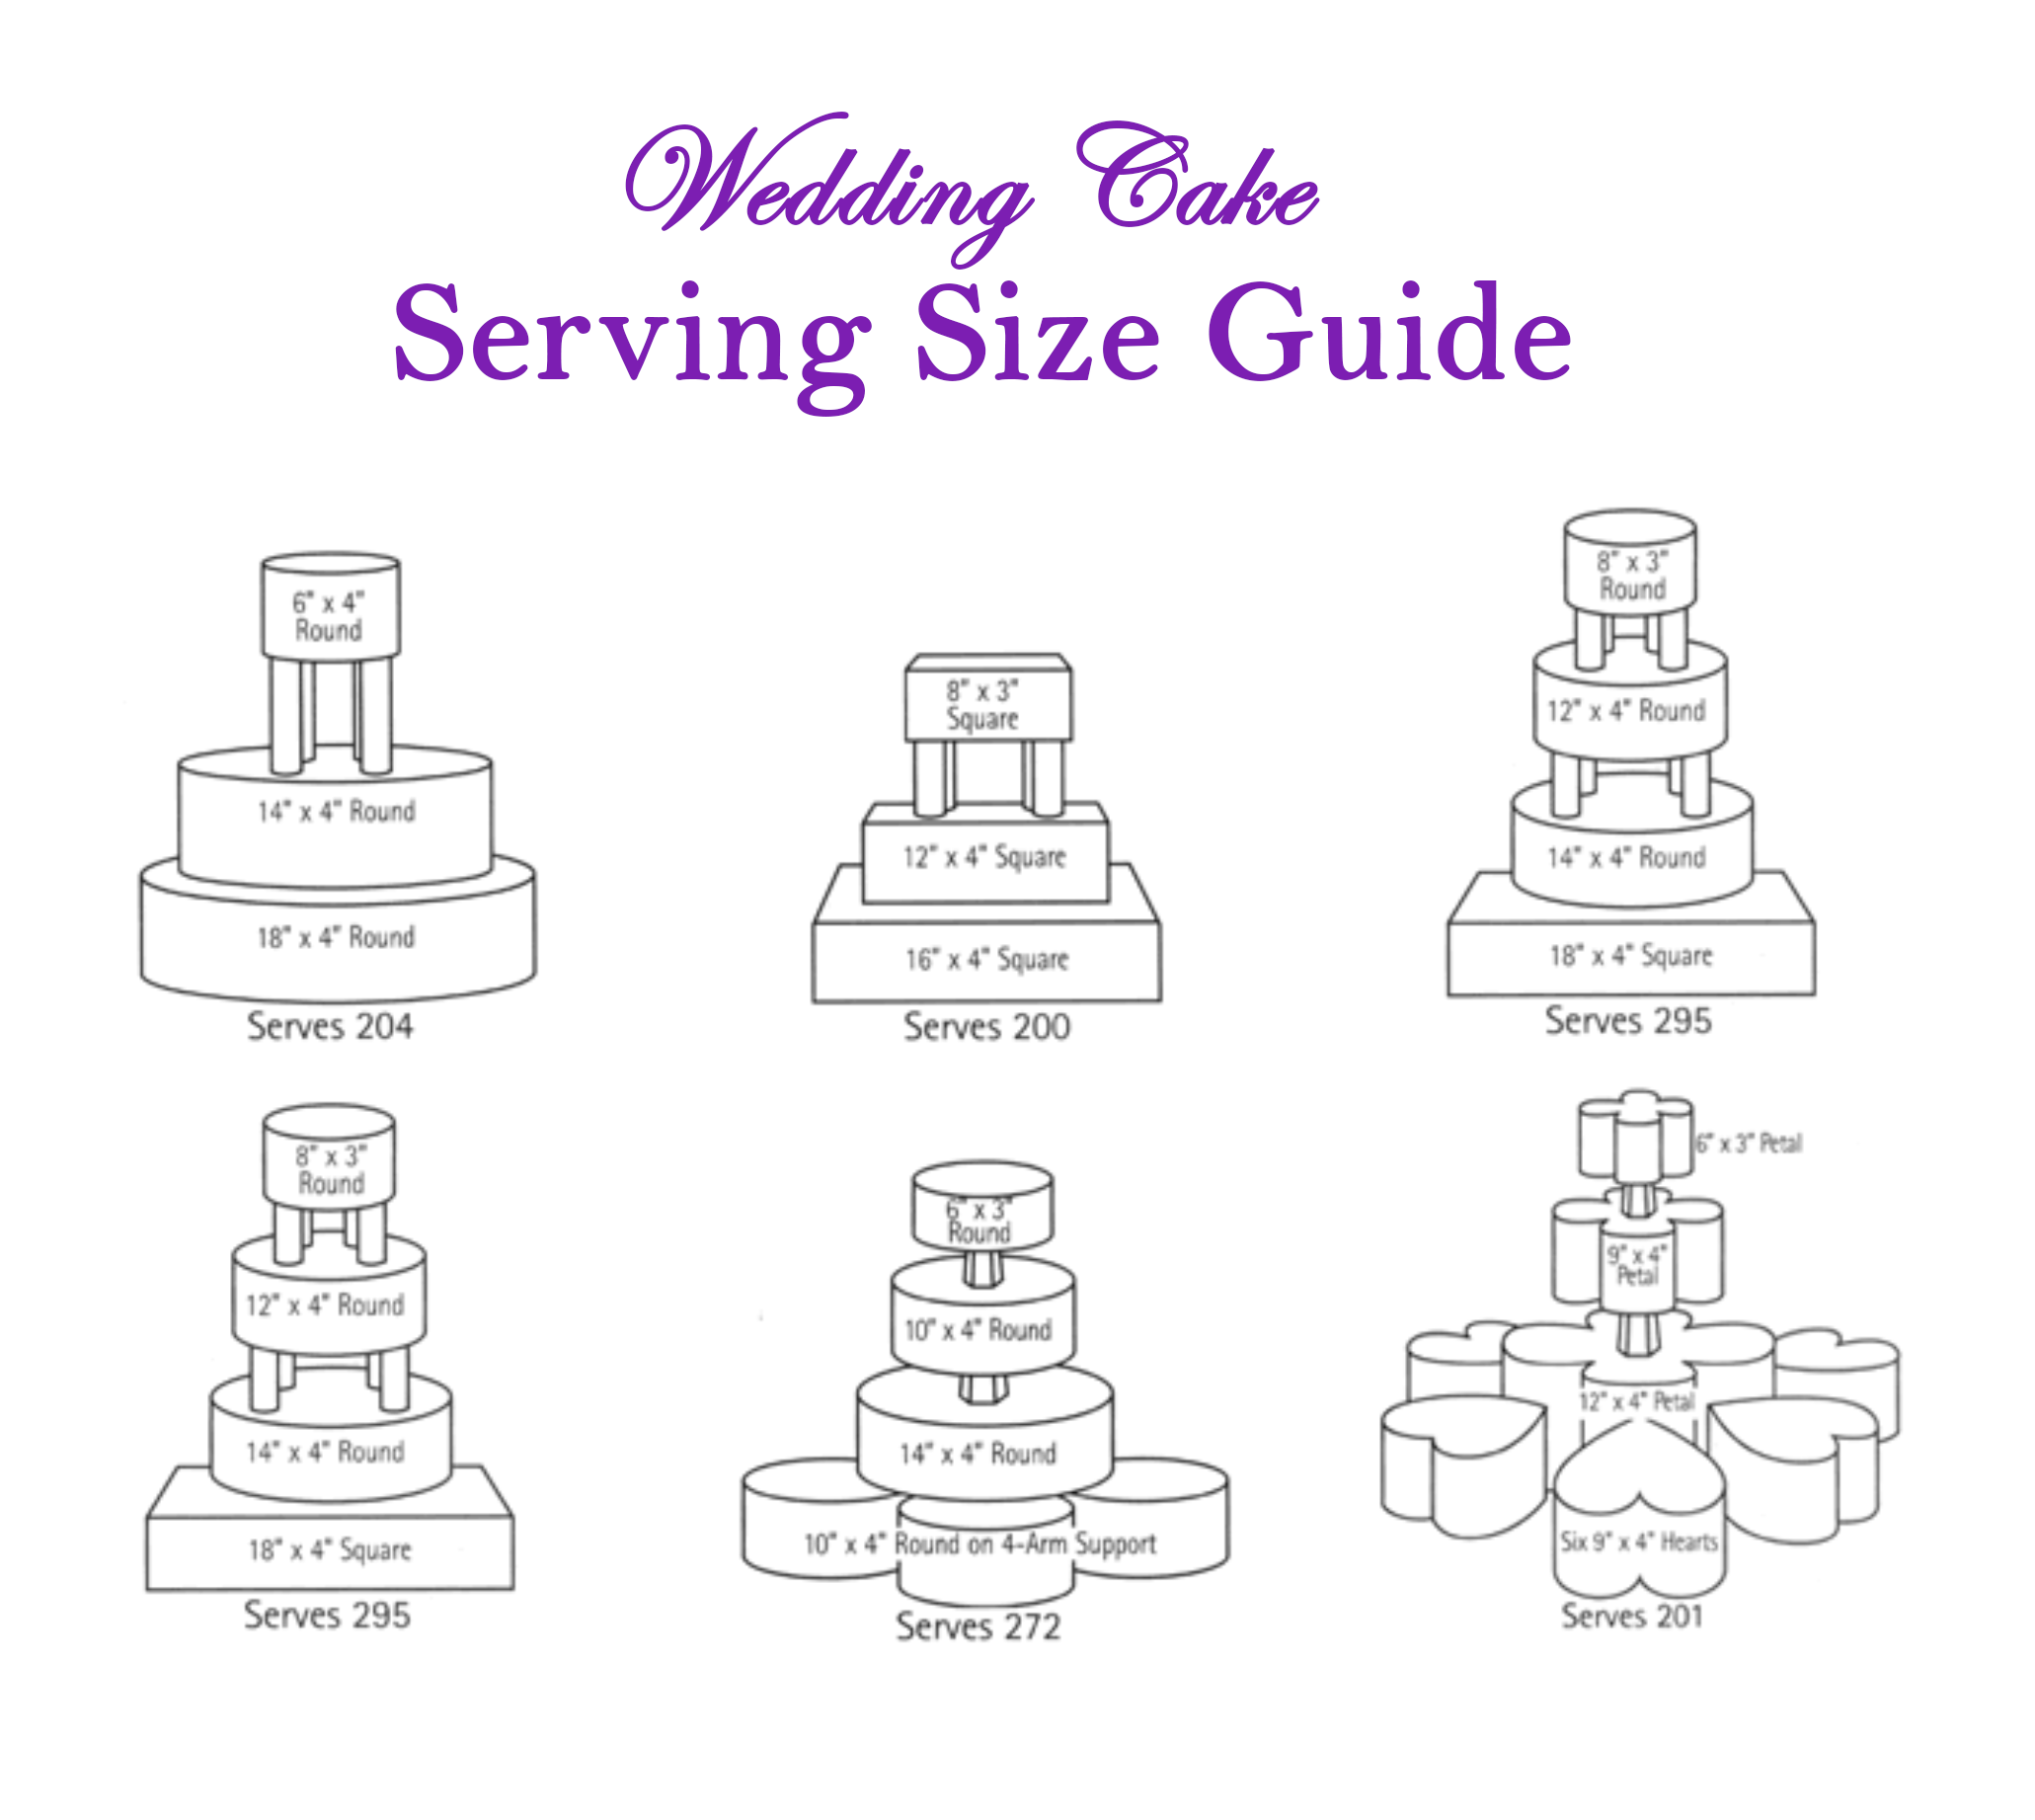 wedding cakes portion sizes wedding cake serving size guide from www wilton cake 25299